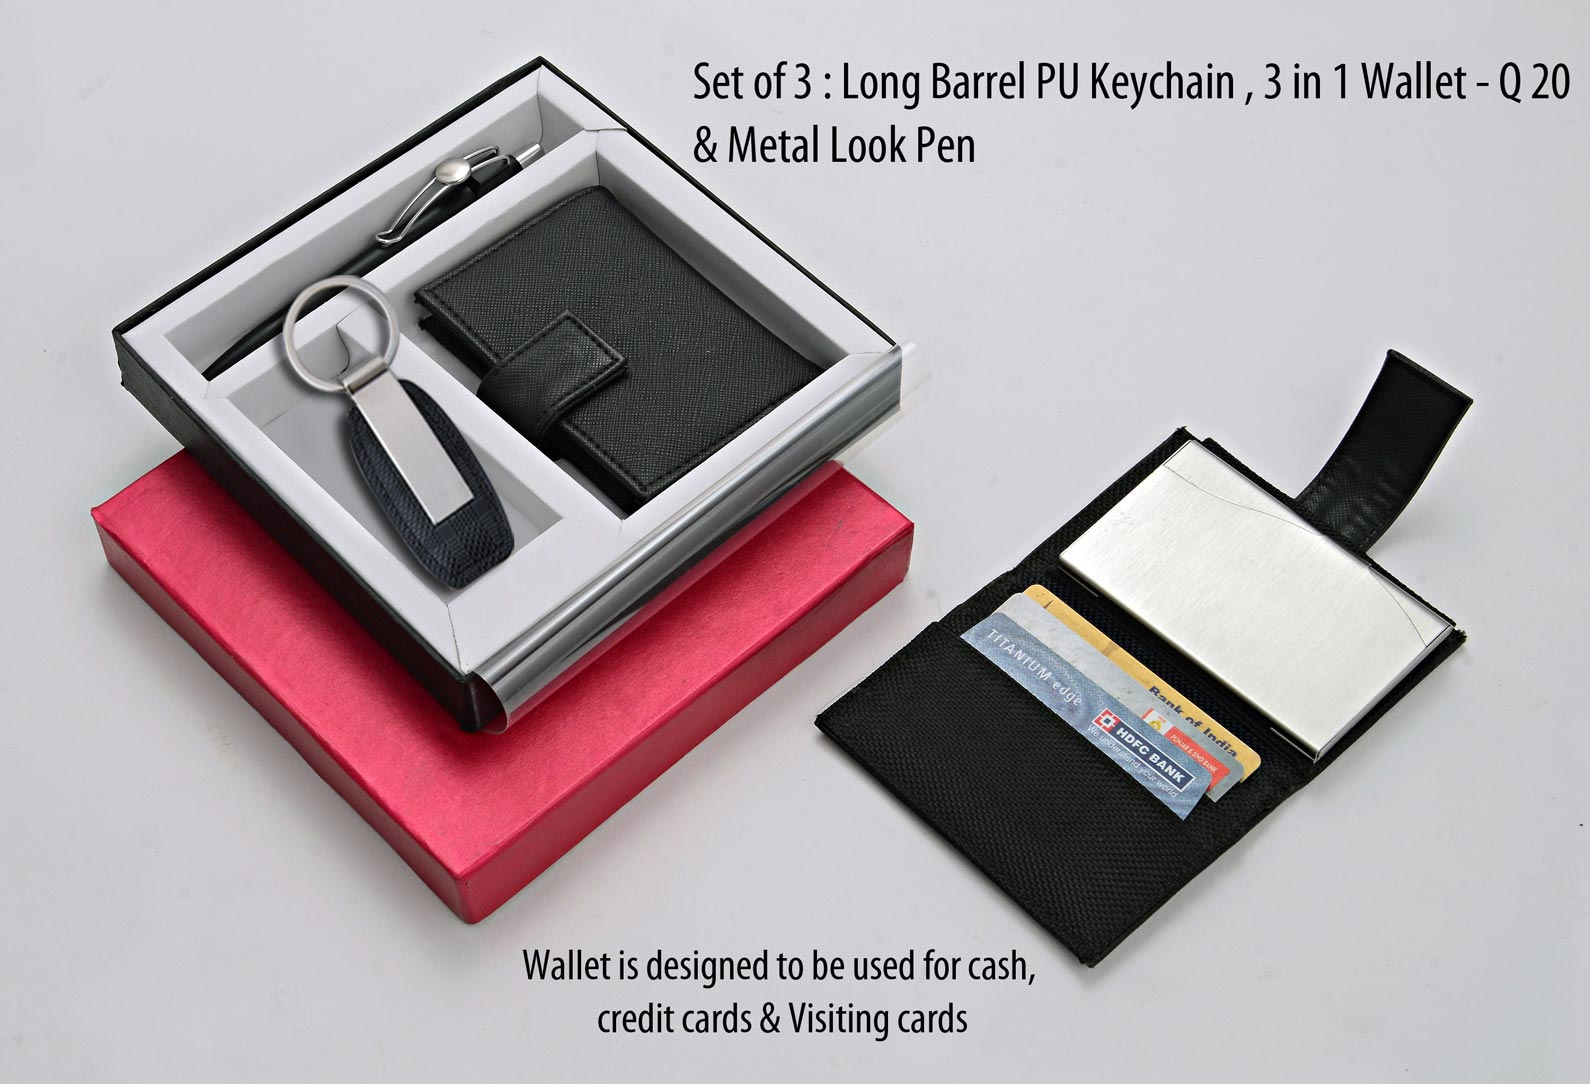 Q20 - Set of 3 : Long barrel PU Keychain, 3 in 1 wallet (For cash, cards and visiting cards) & Metal look Pen